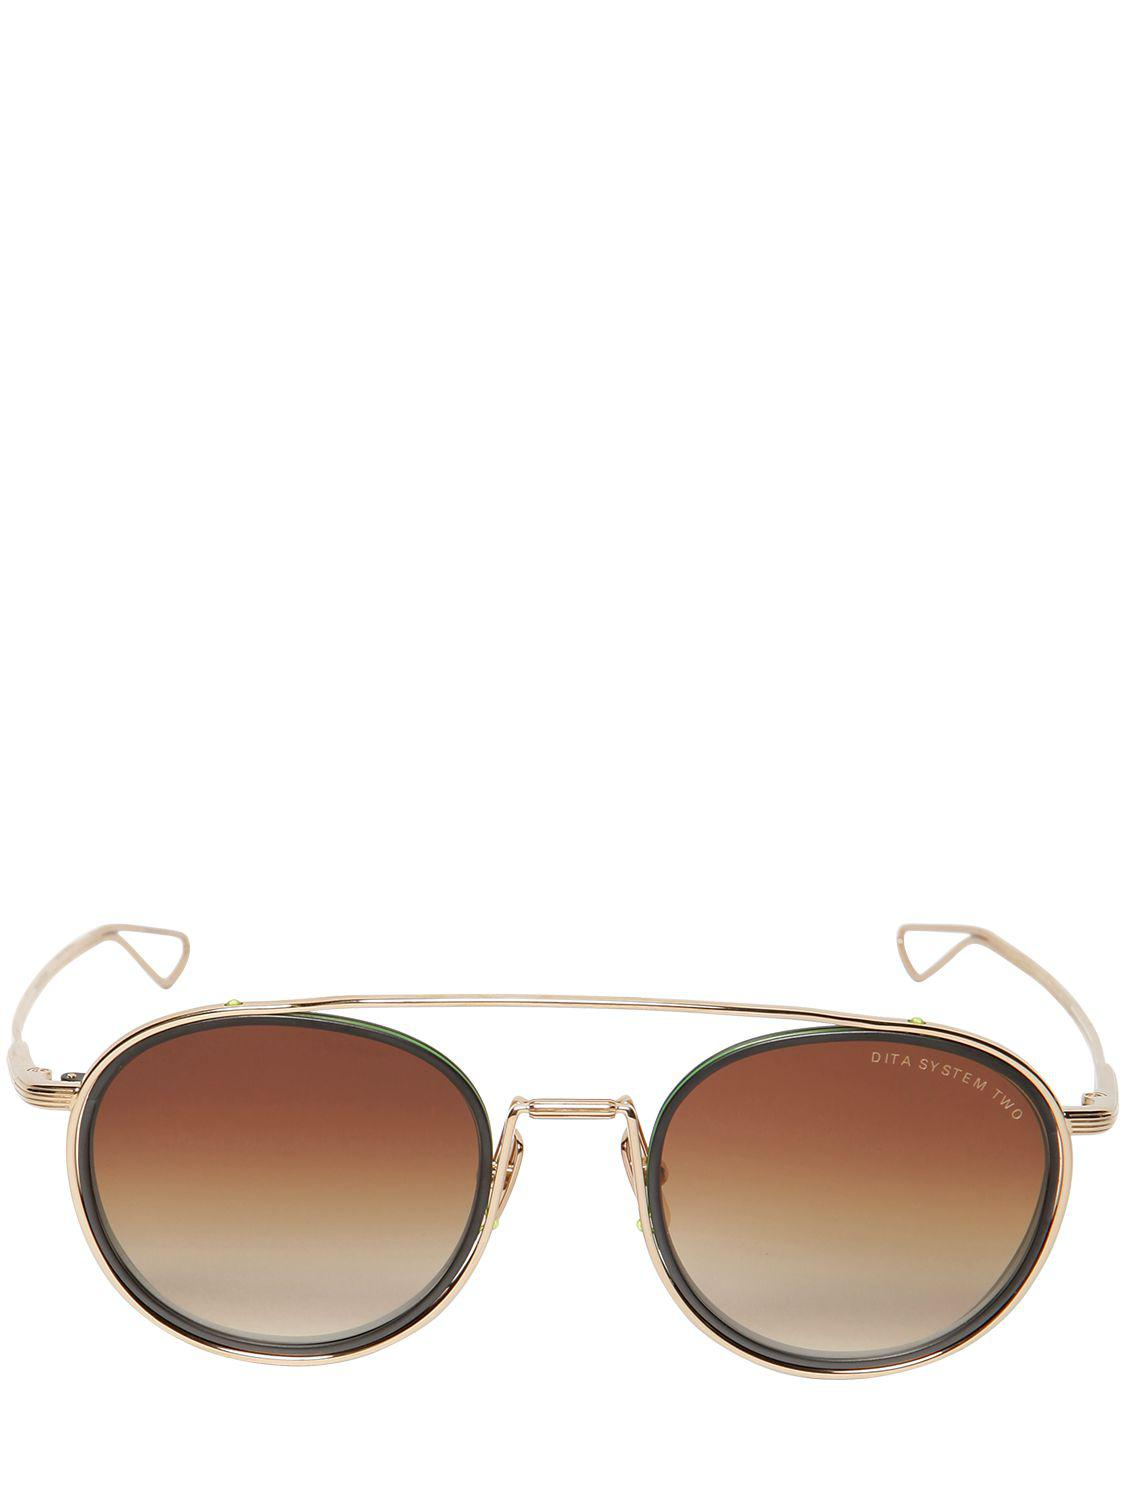 b1e5816a8d9 Lyst - DITA System Two Sunglasses for Men